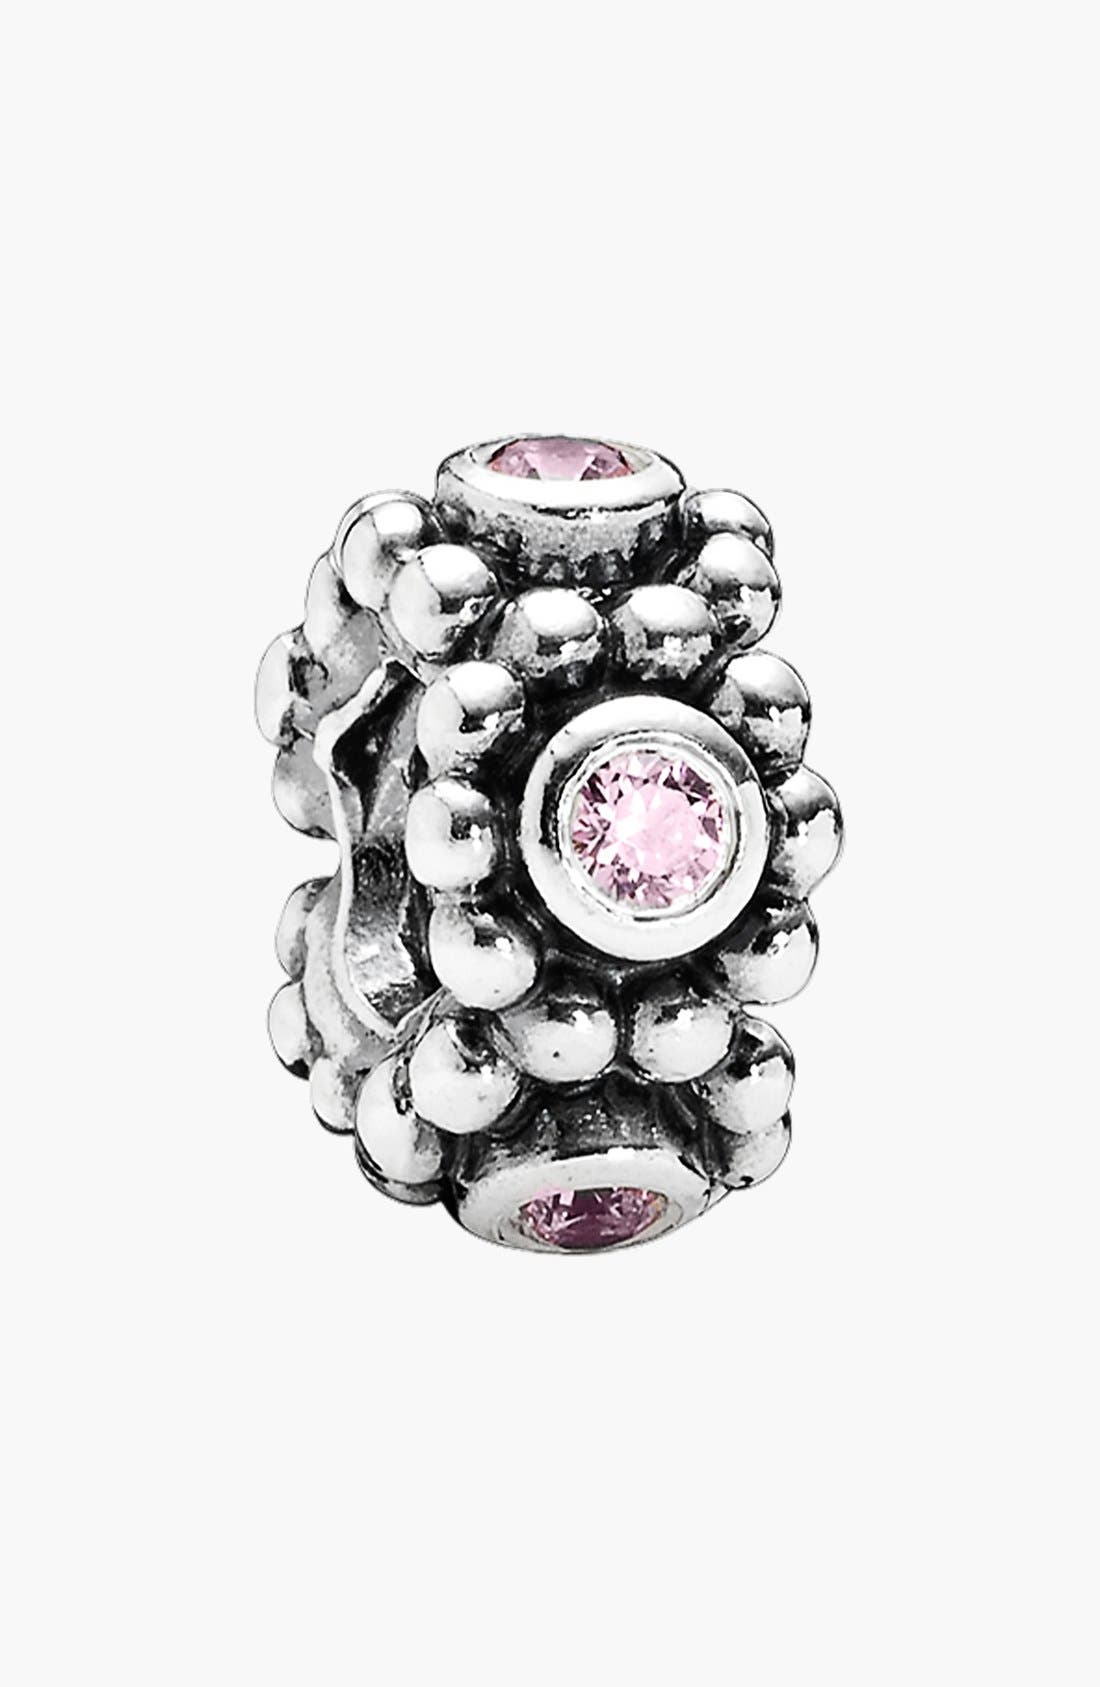 Alternate Image 1 Selected - PANDORA 'Her Majesty' Spacer Charm